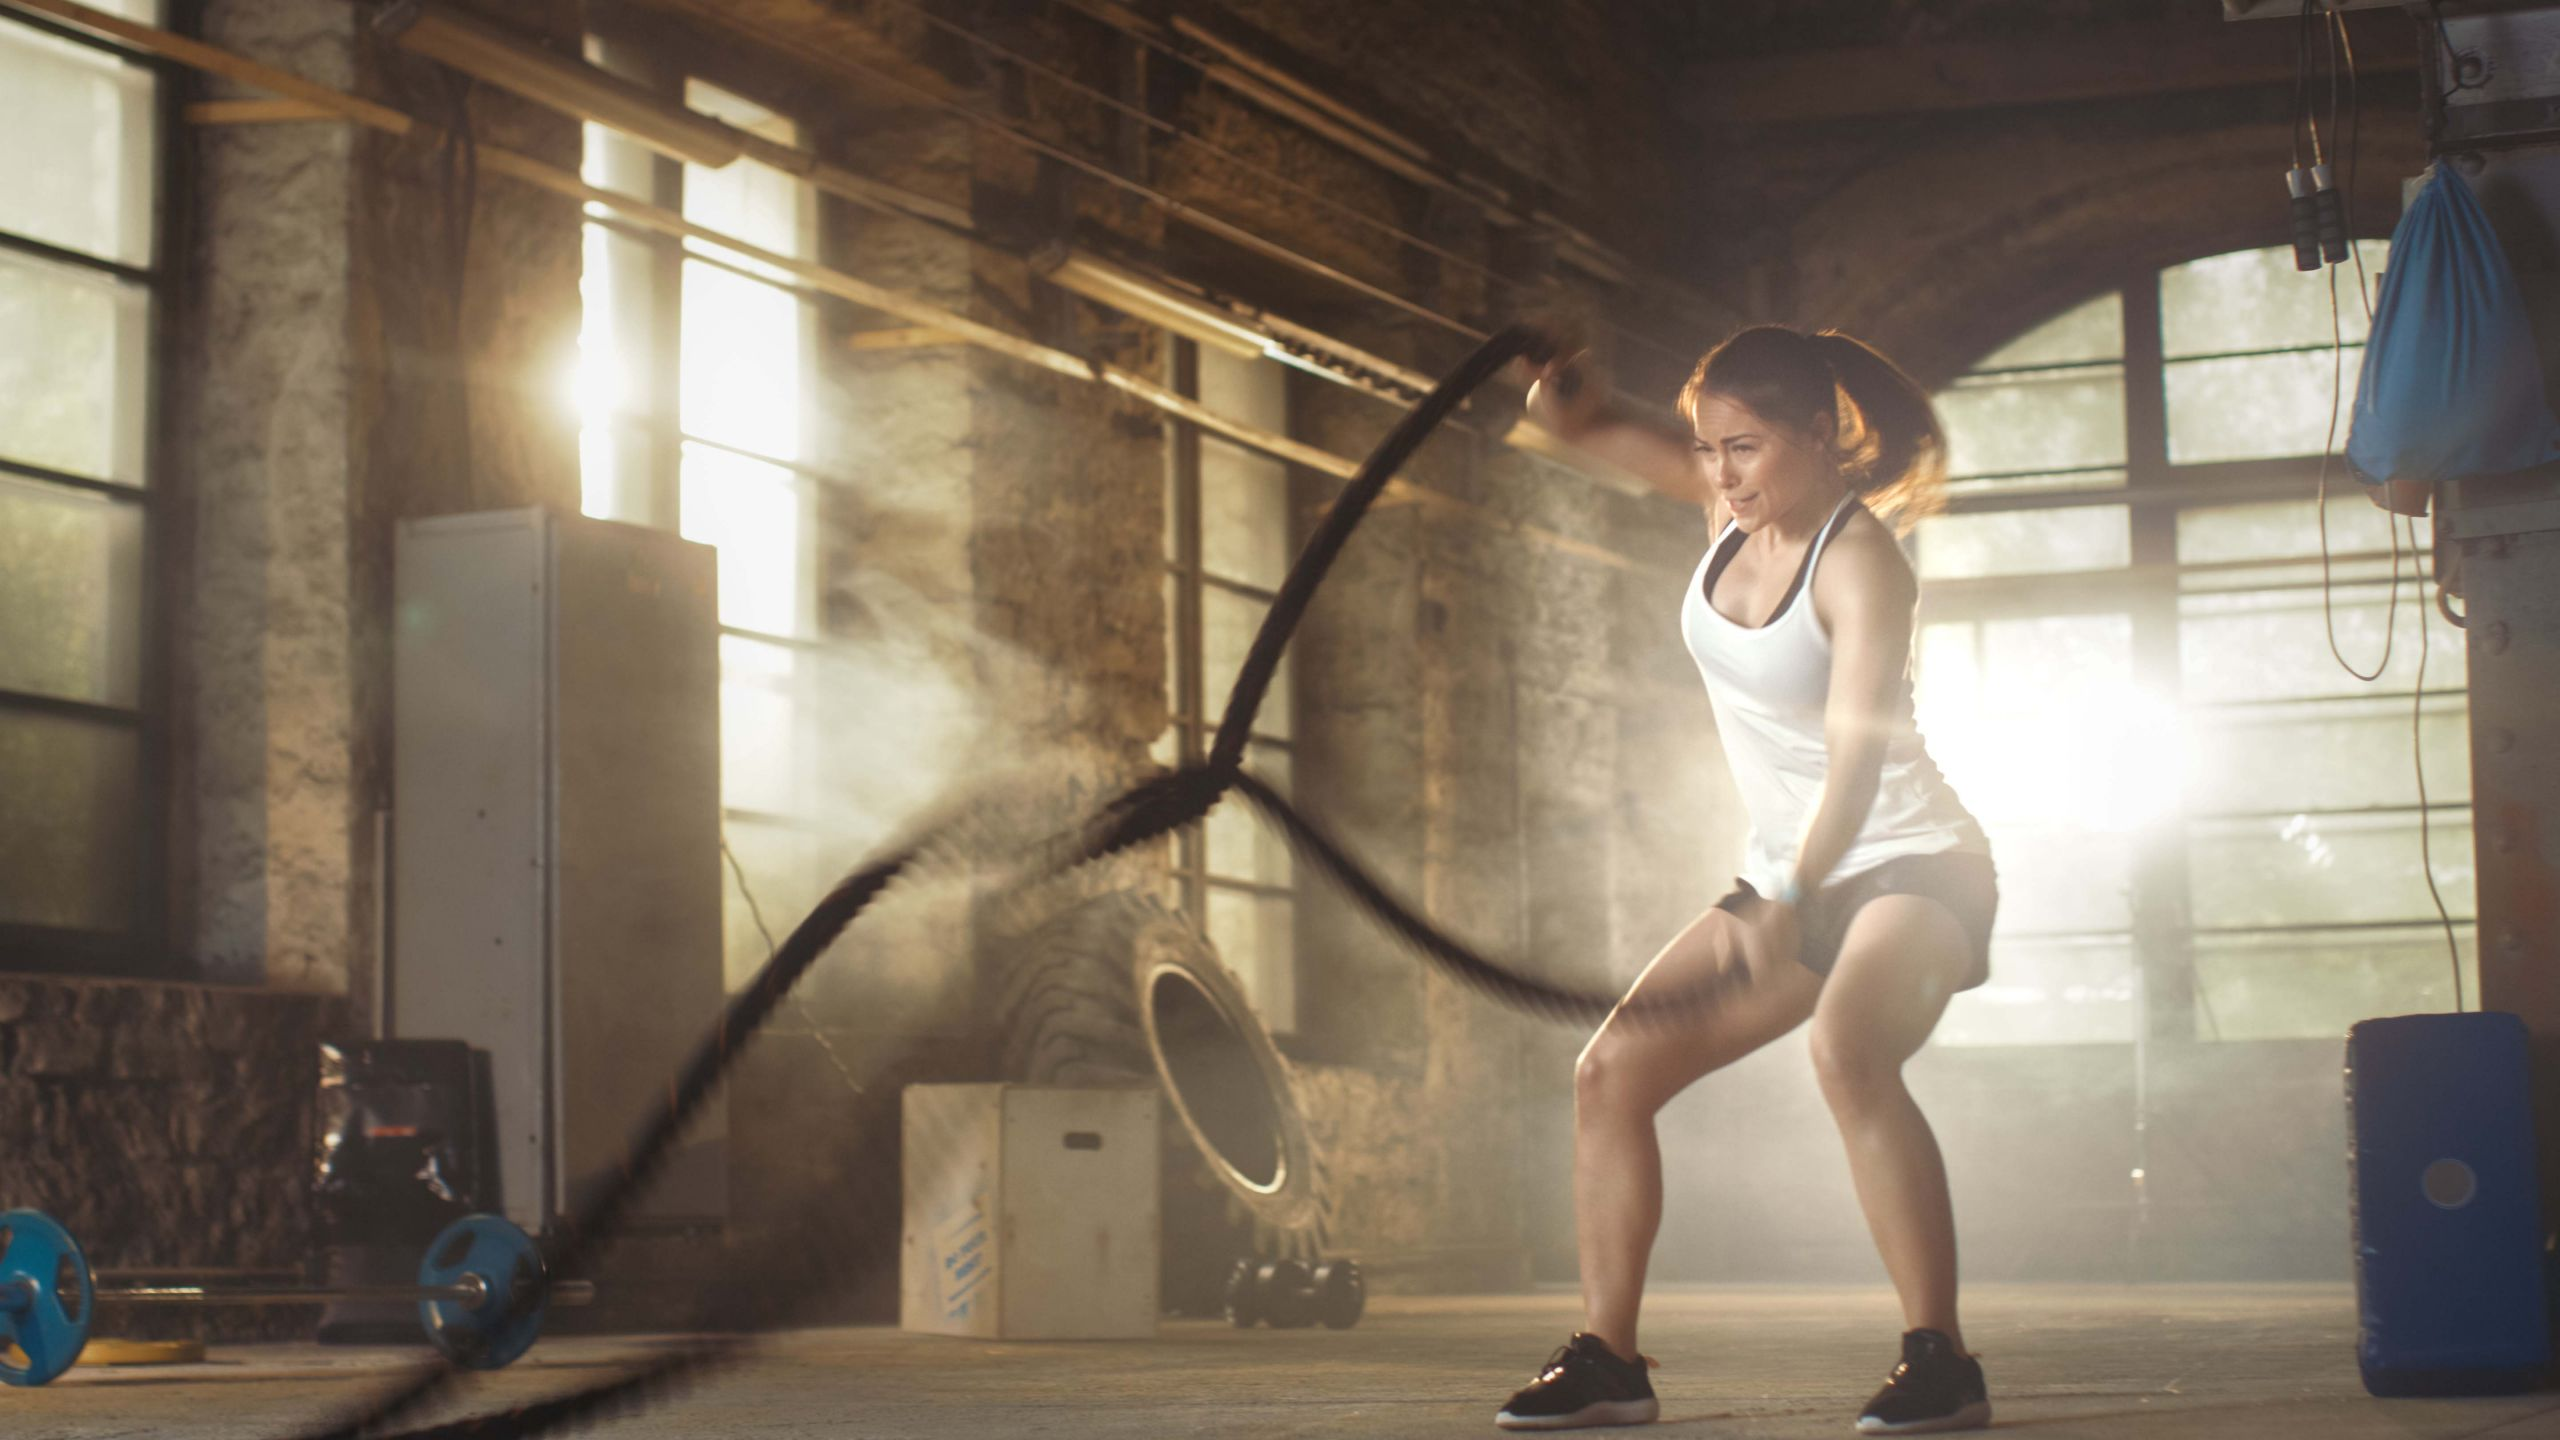 Try to increase your workout intensity and burn more with each routine you do.